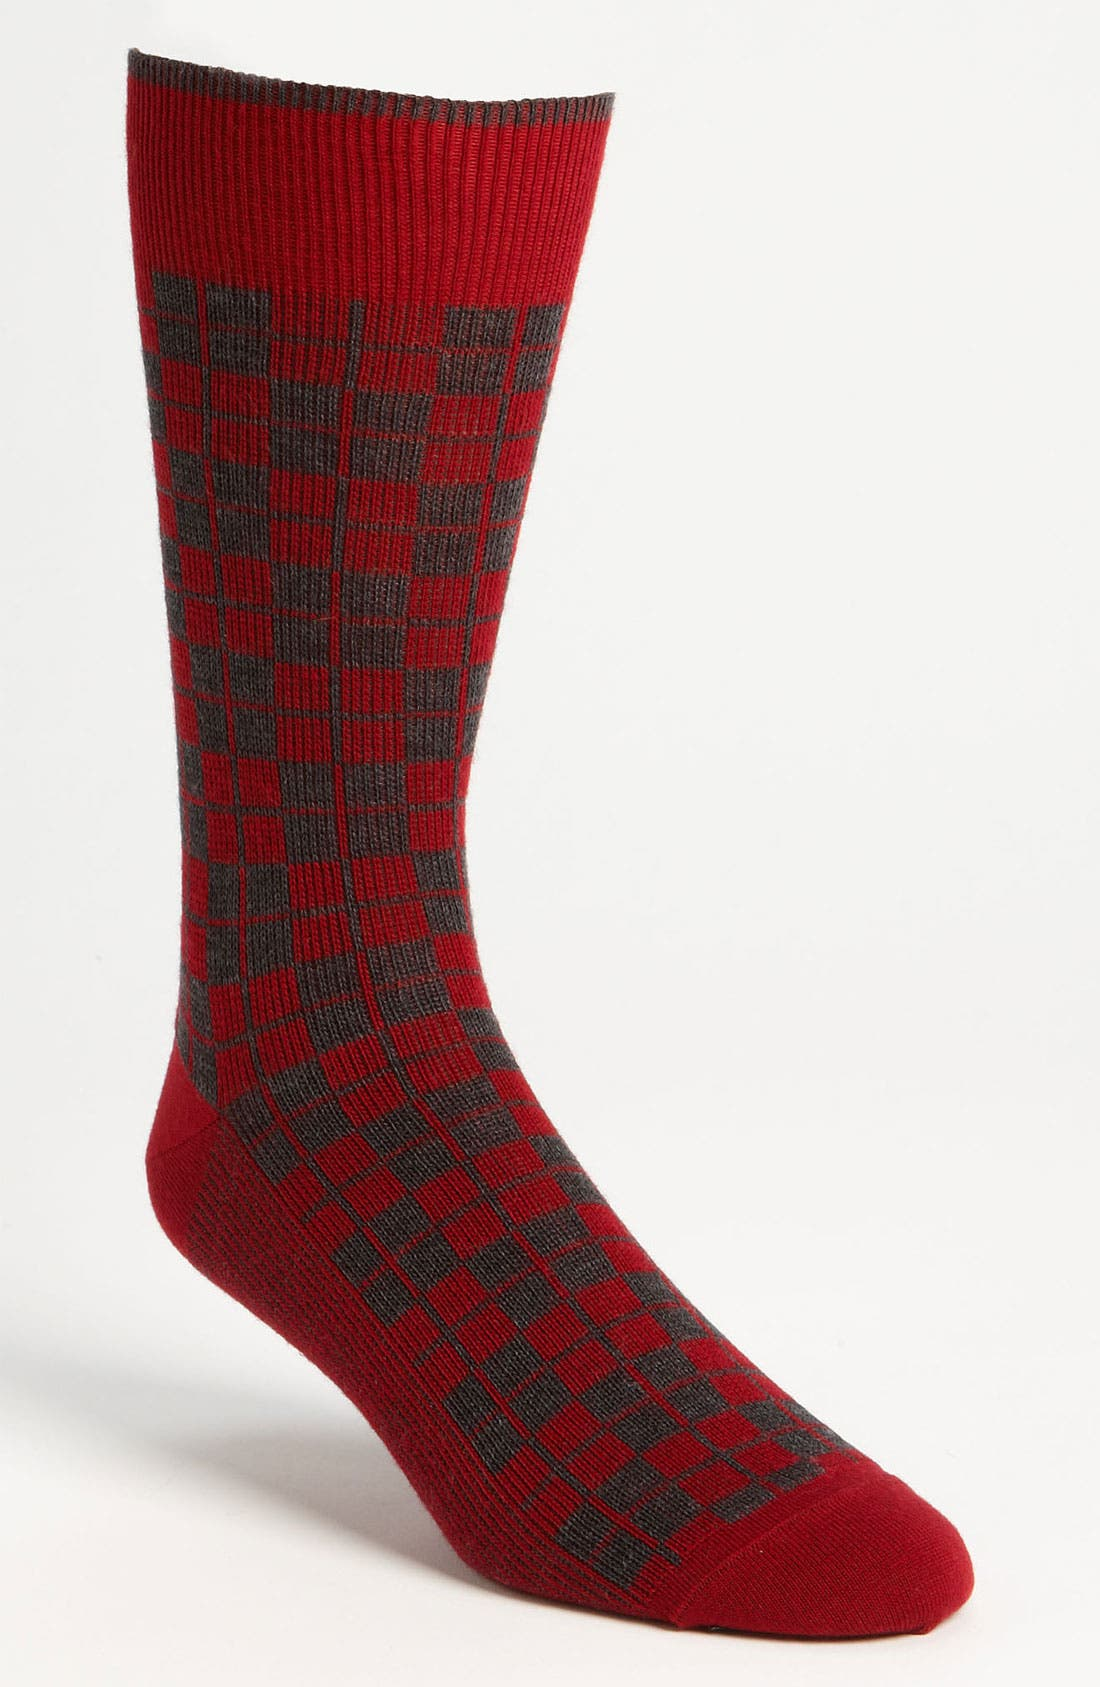 Alternate Image 1 Selected - Marcoliani 'Jacquard' Tartan Socks